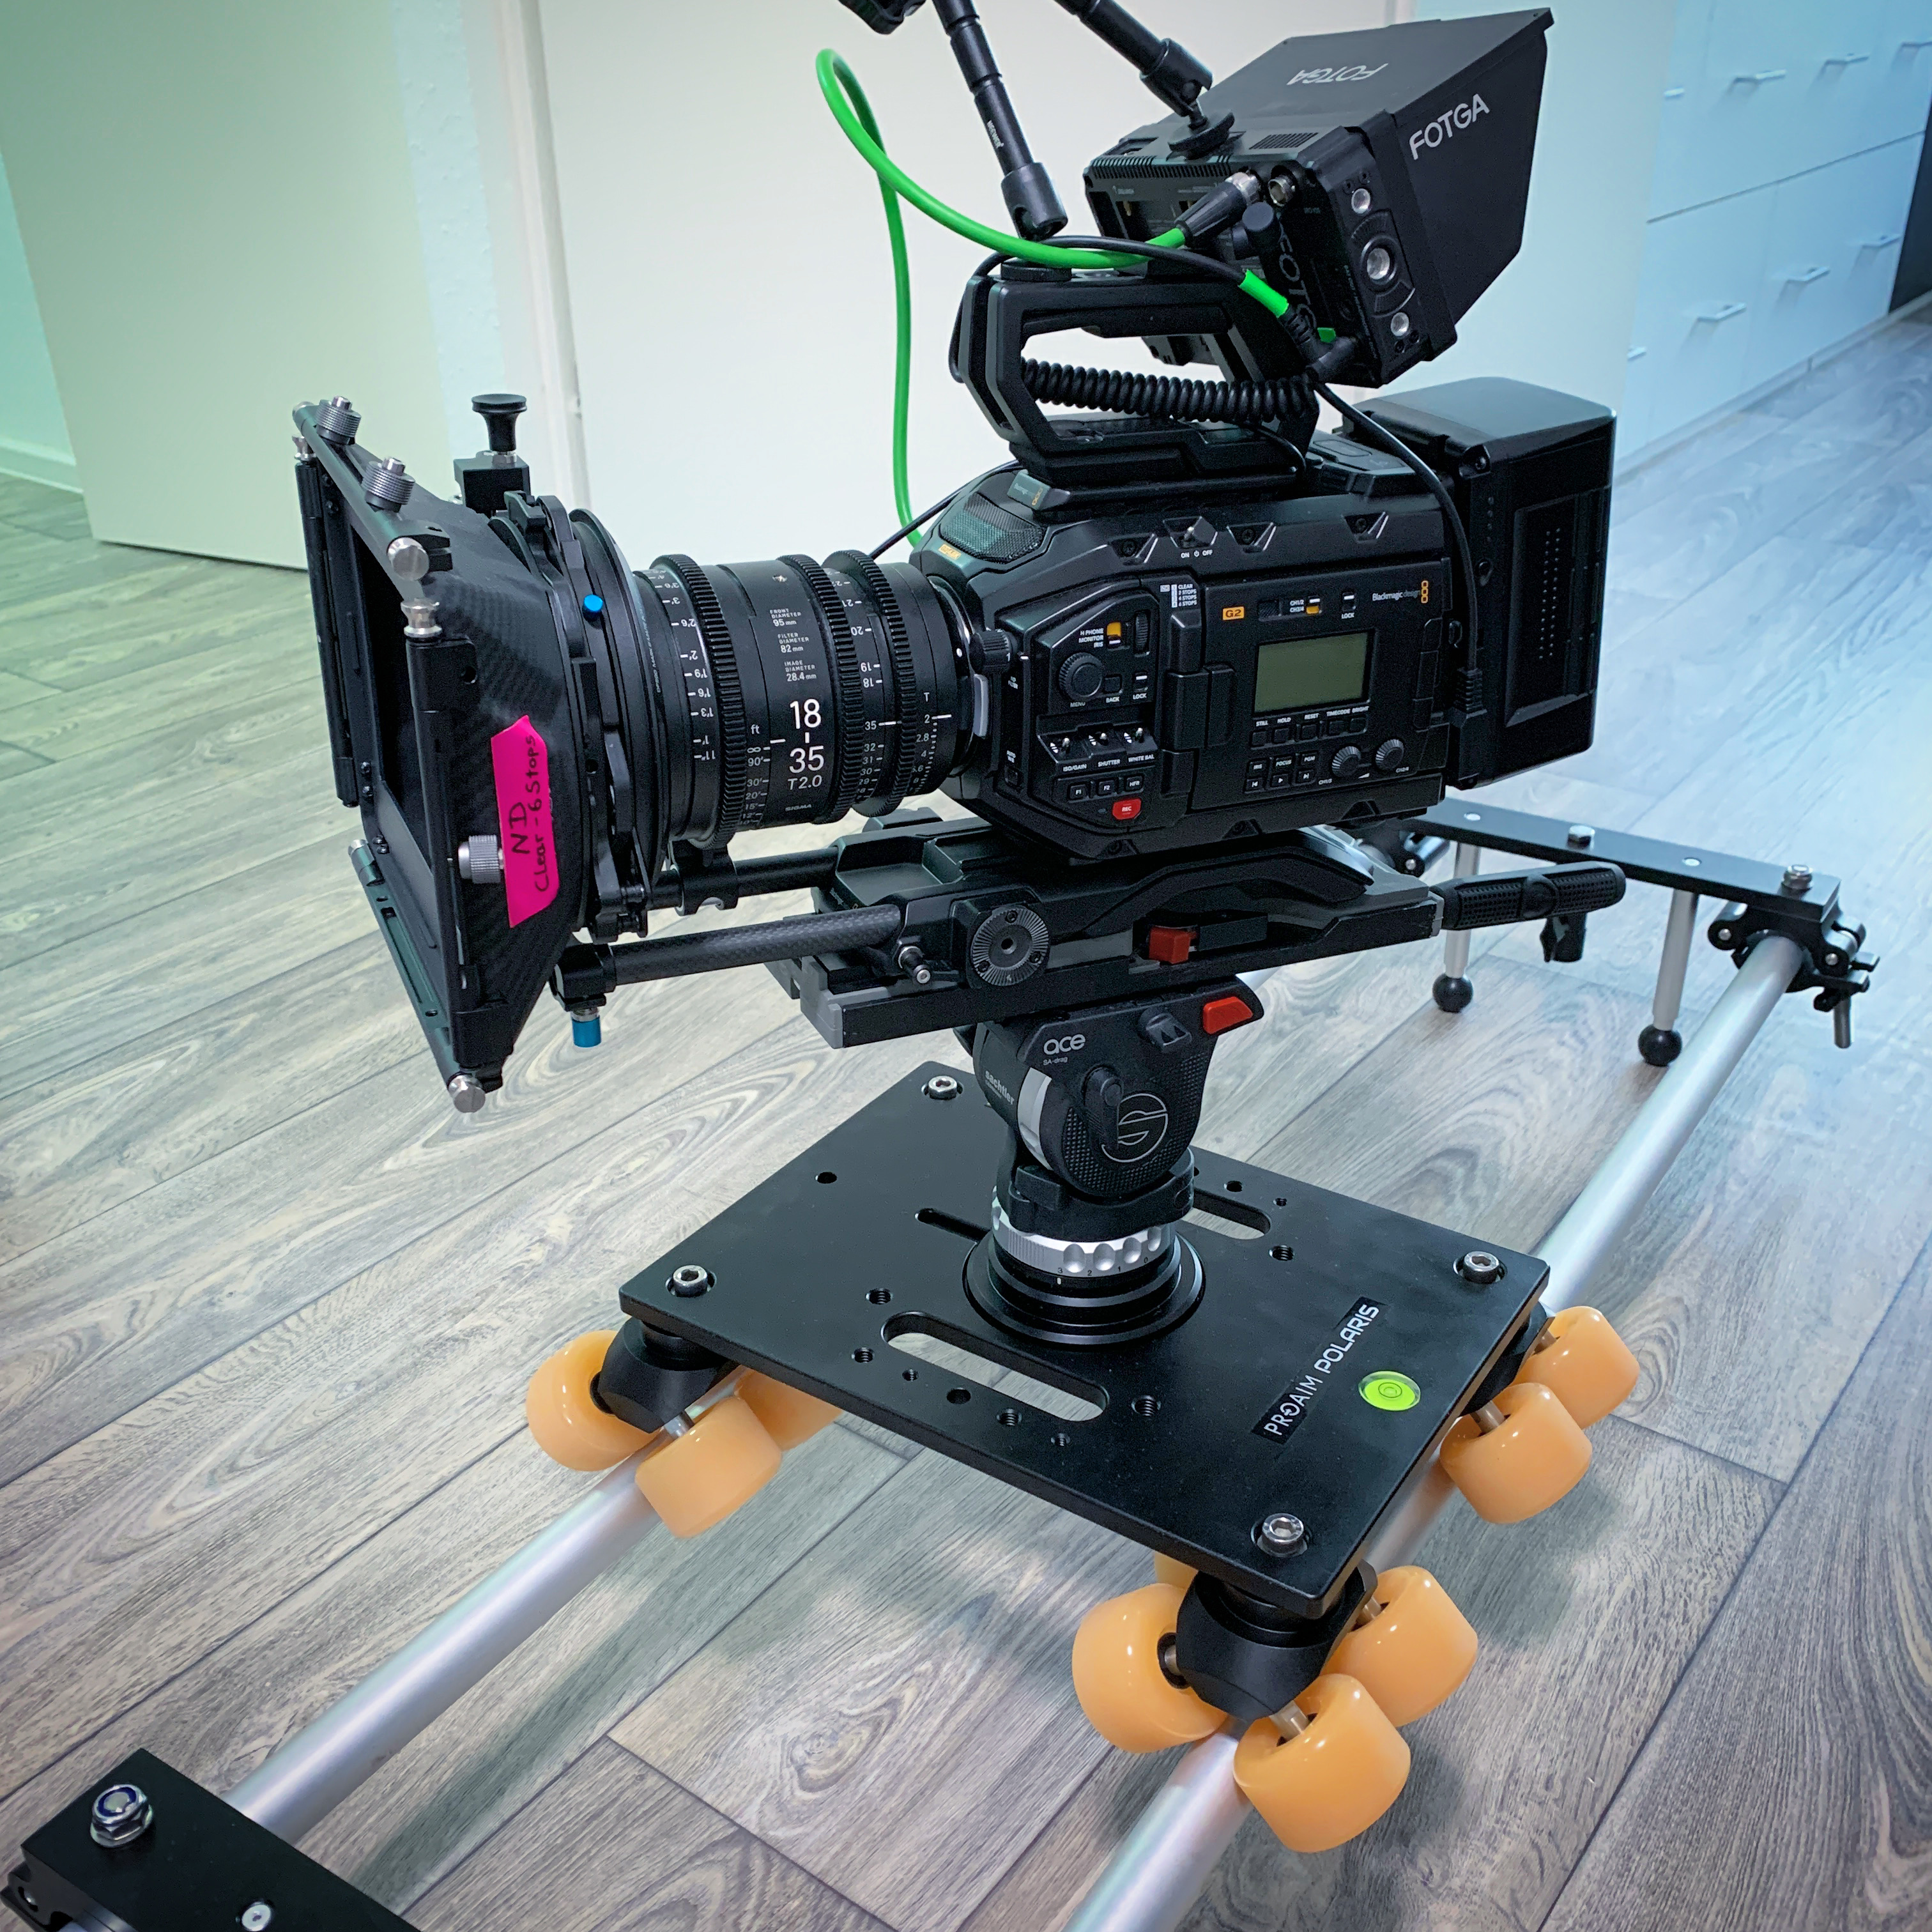 Kamera auf Slider-Dolly